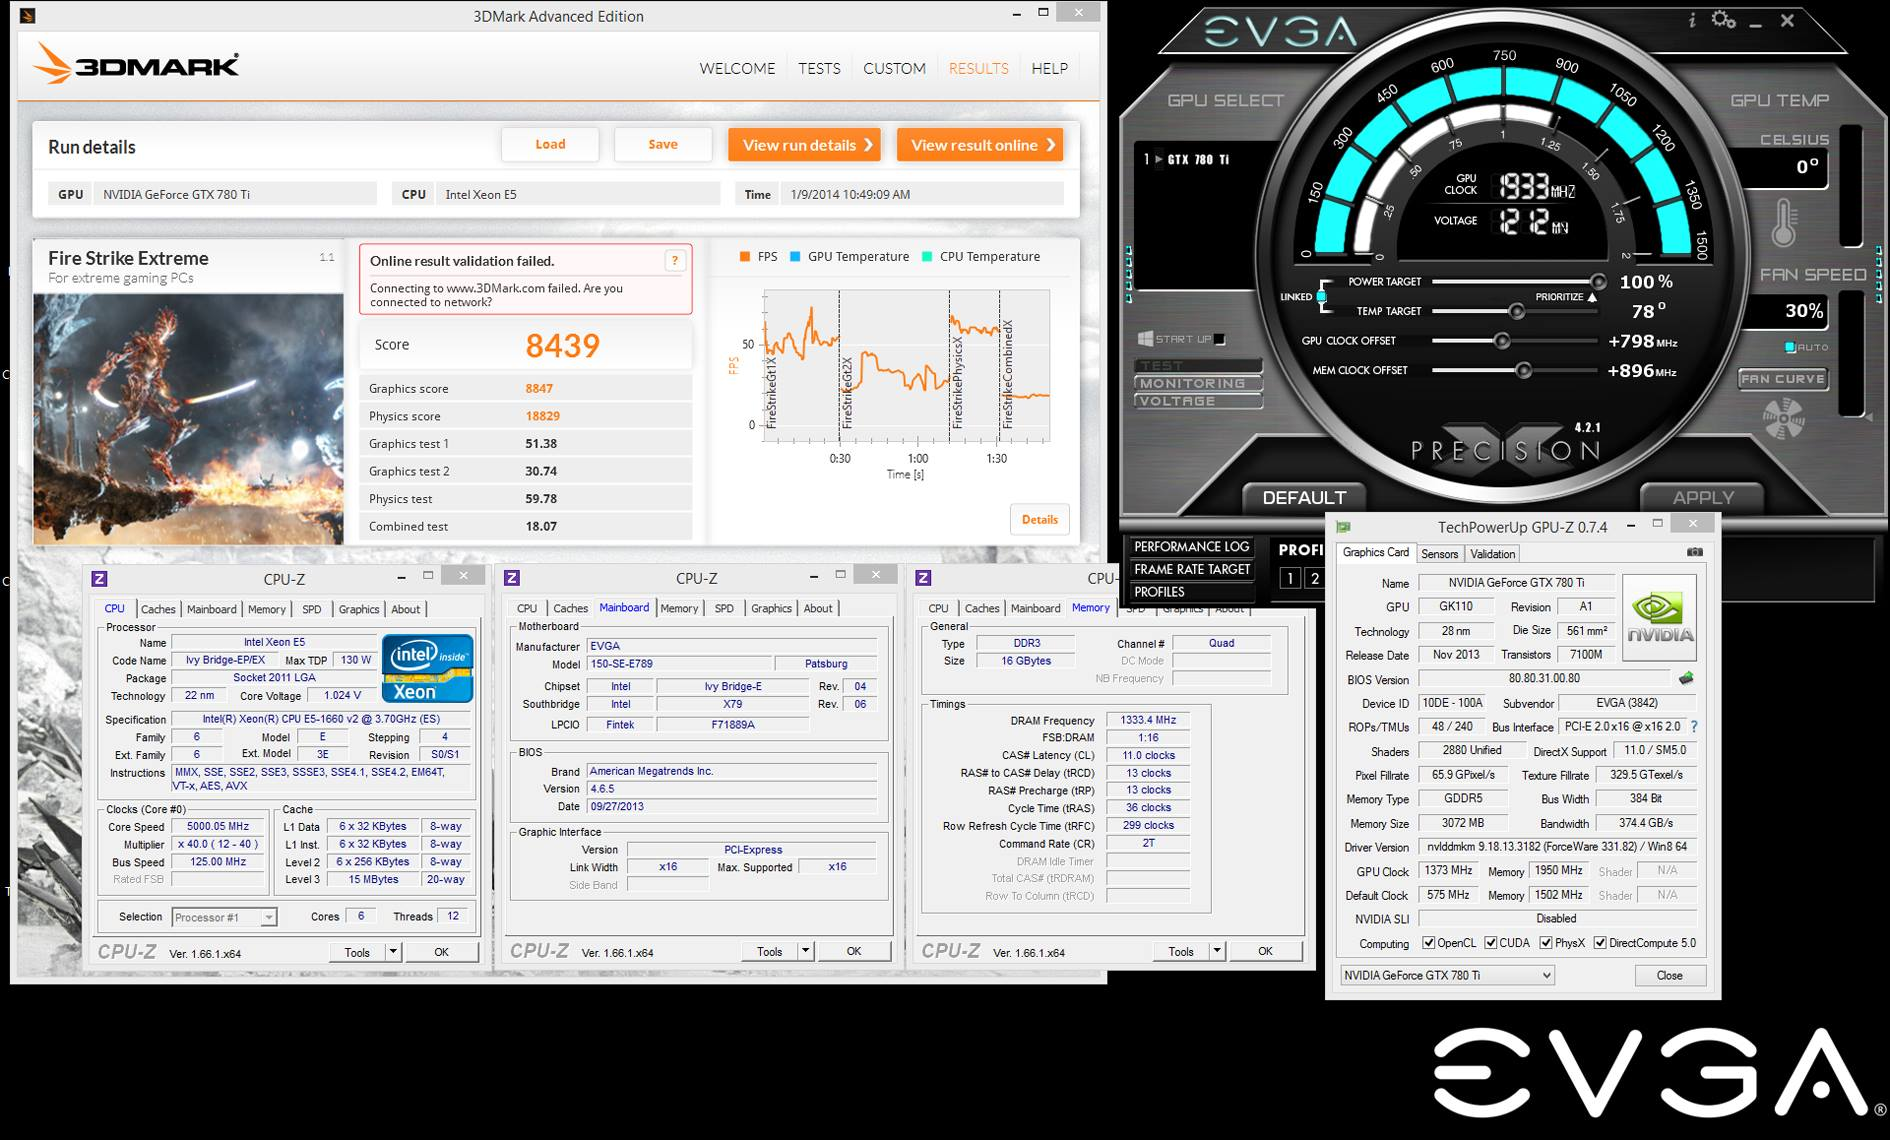 EVGA GTX 780 Ti Classified kingpin 3dmark